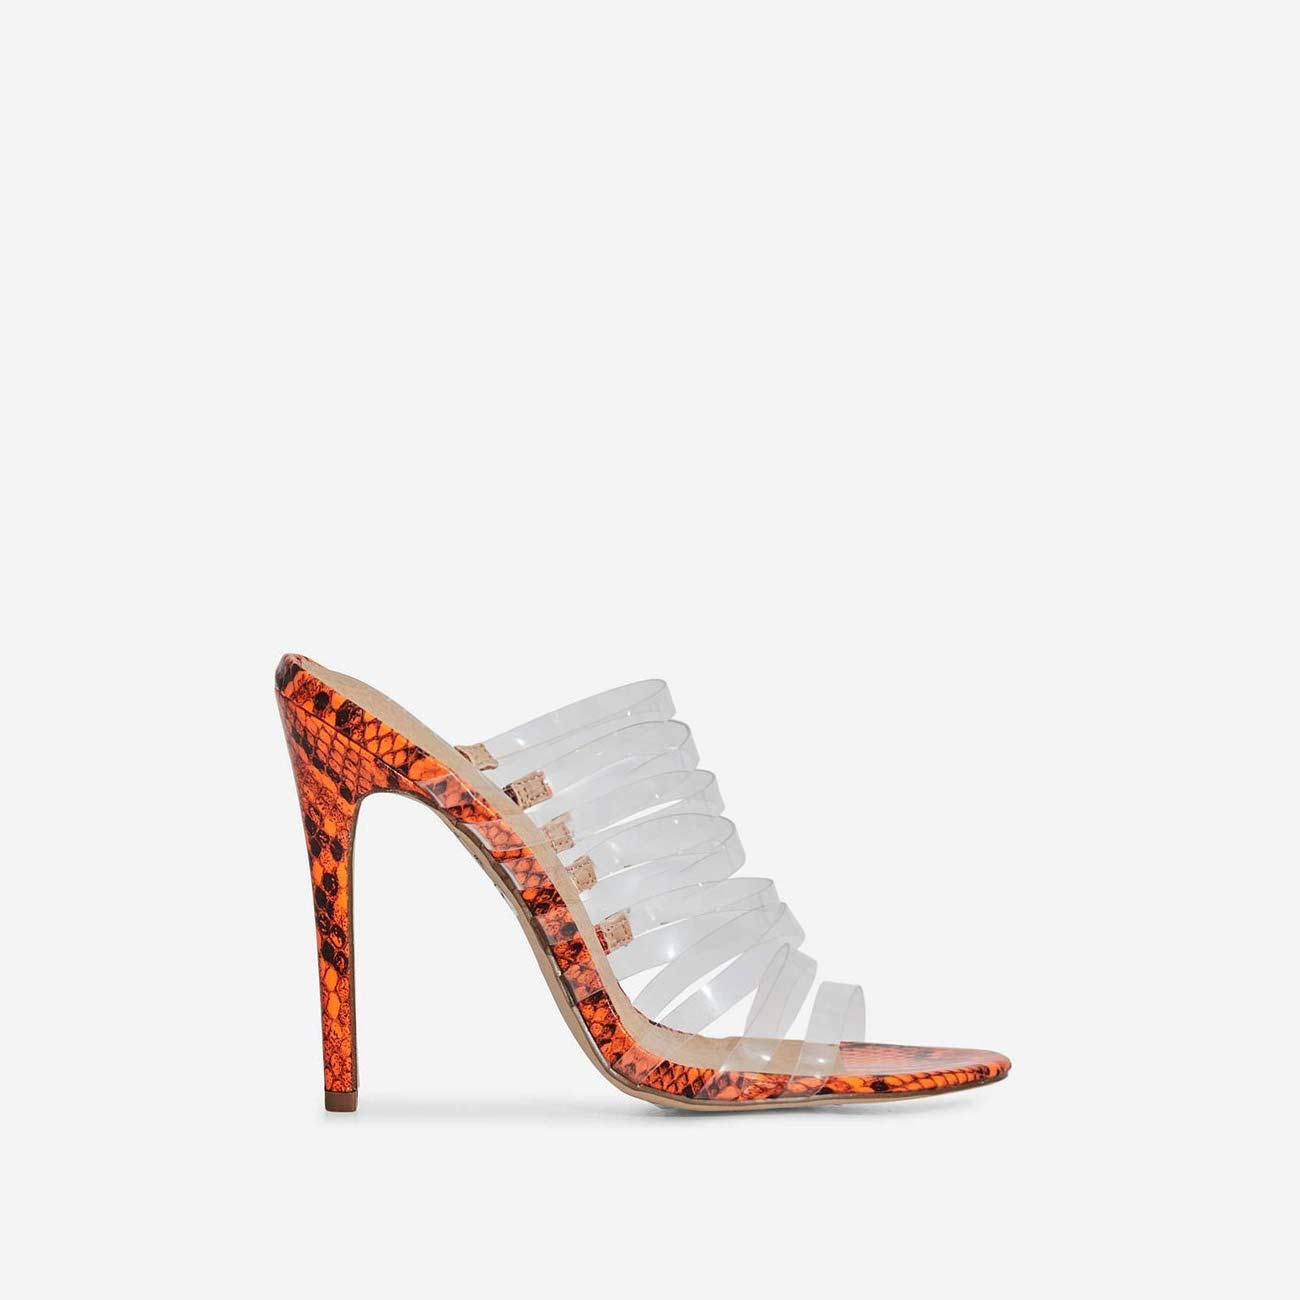 Abby Multi Strap Perspex Heel Mule In Neon Orange Snake Print Faux Leather